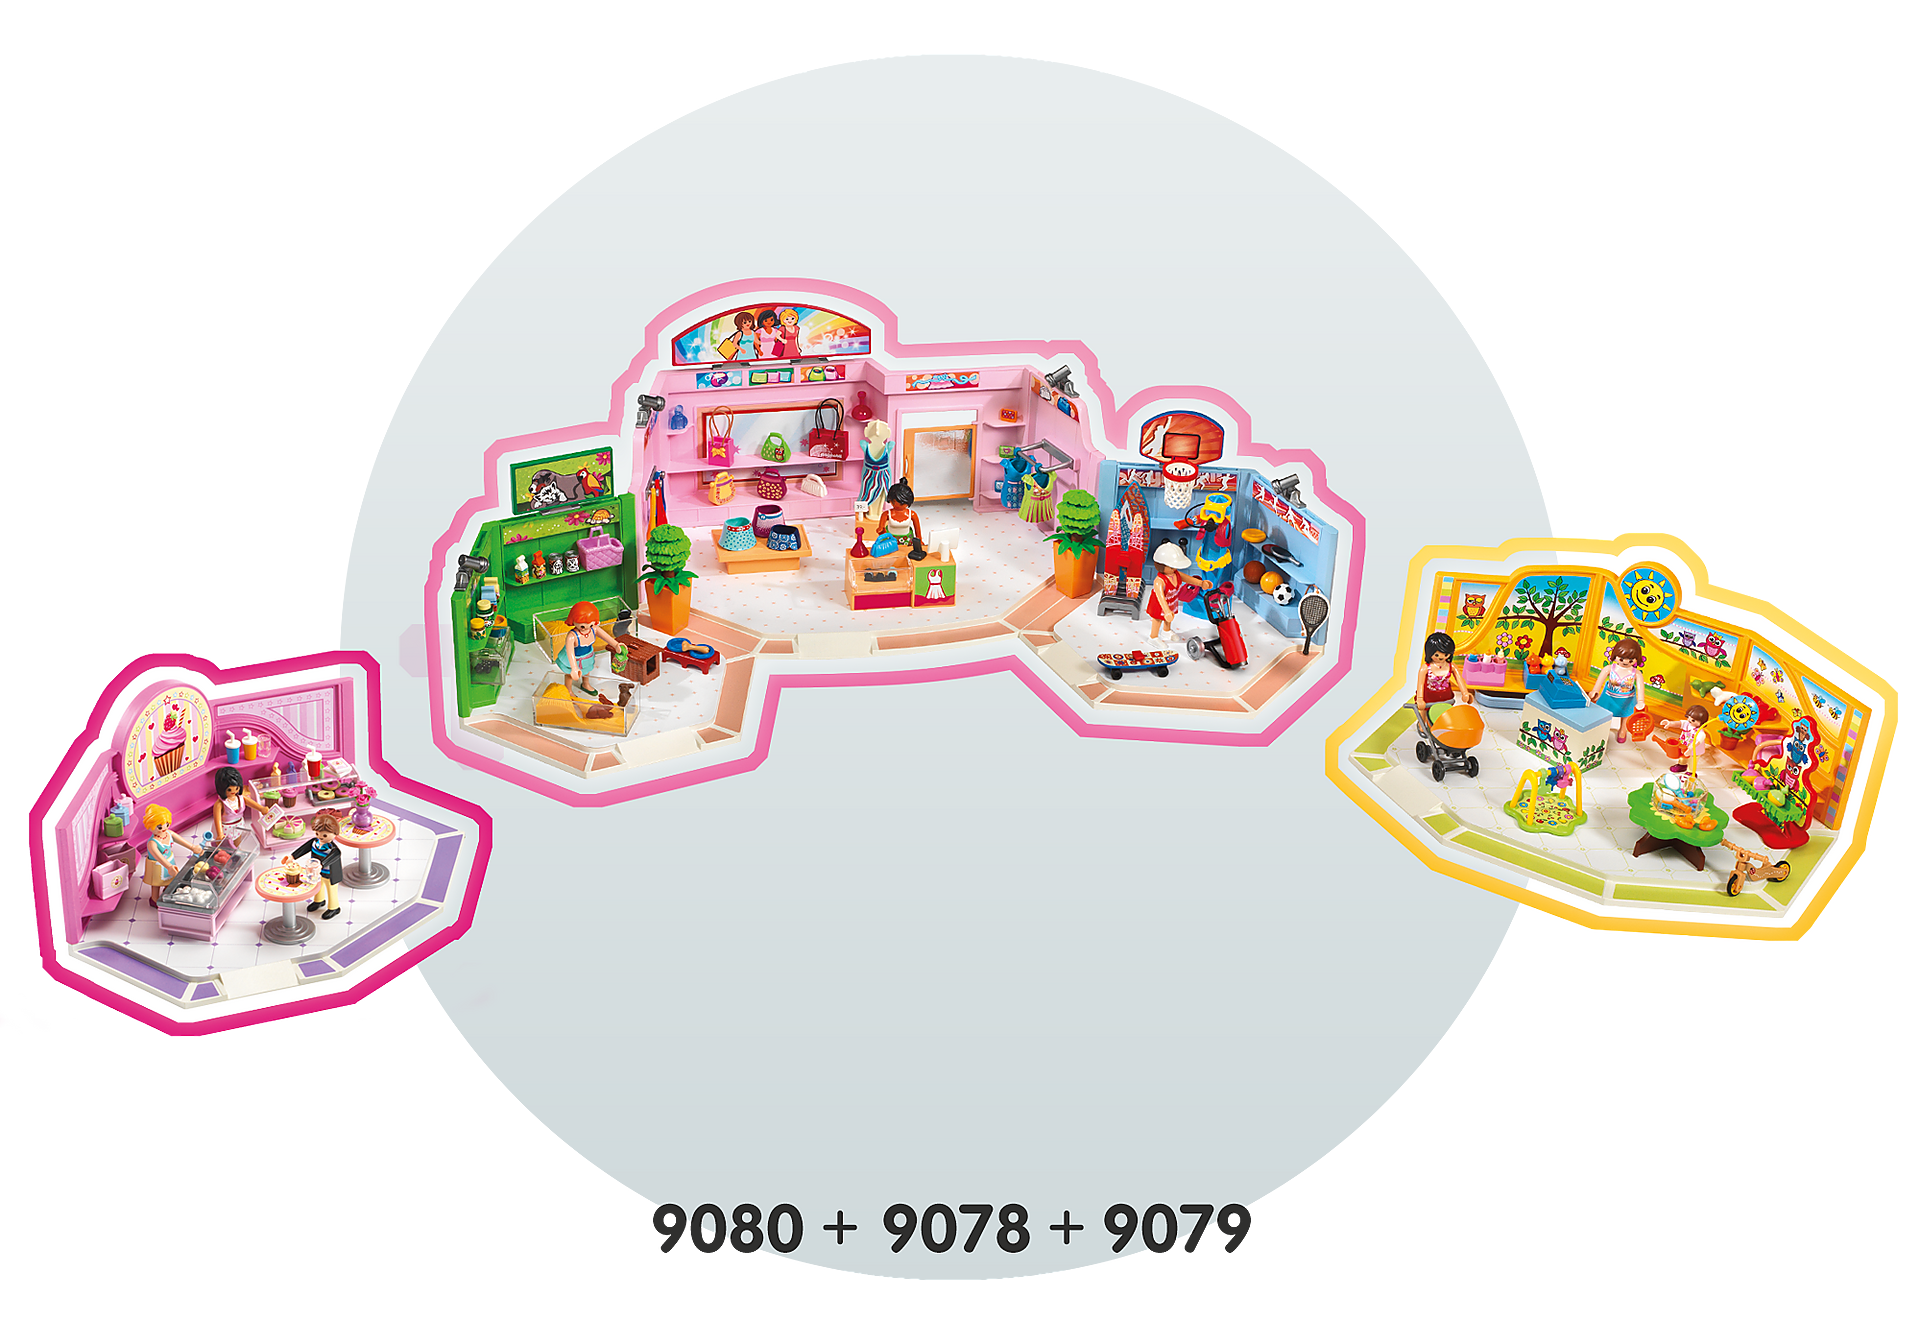 http://media.playmobil.com/i/playmobil/9078_product_extra5/Einkaufspassage